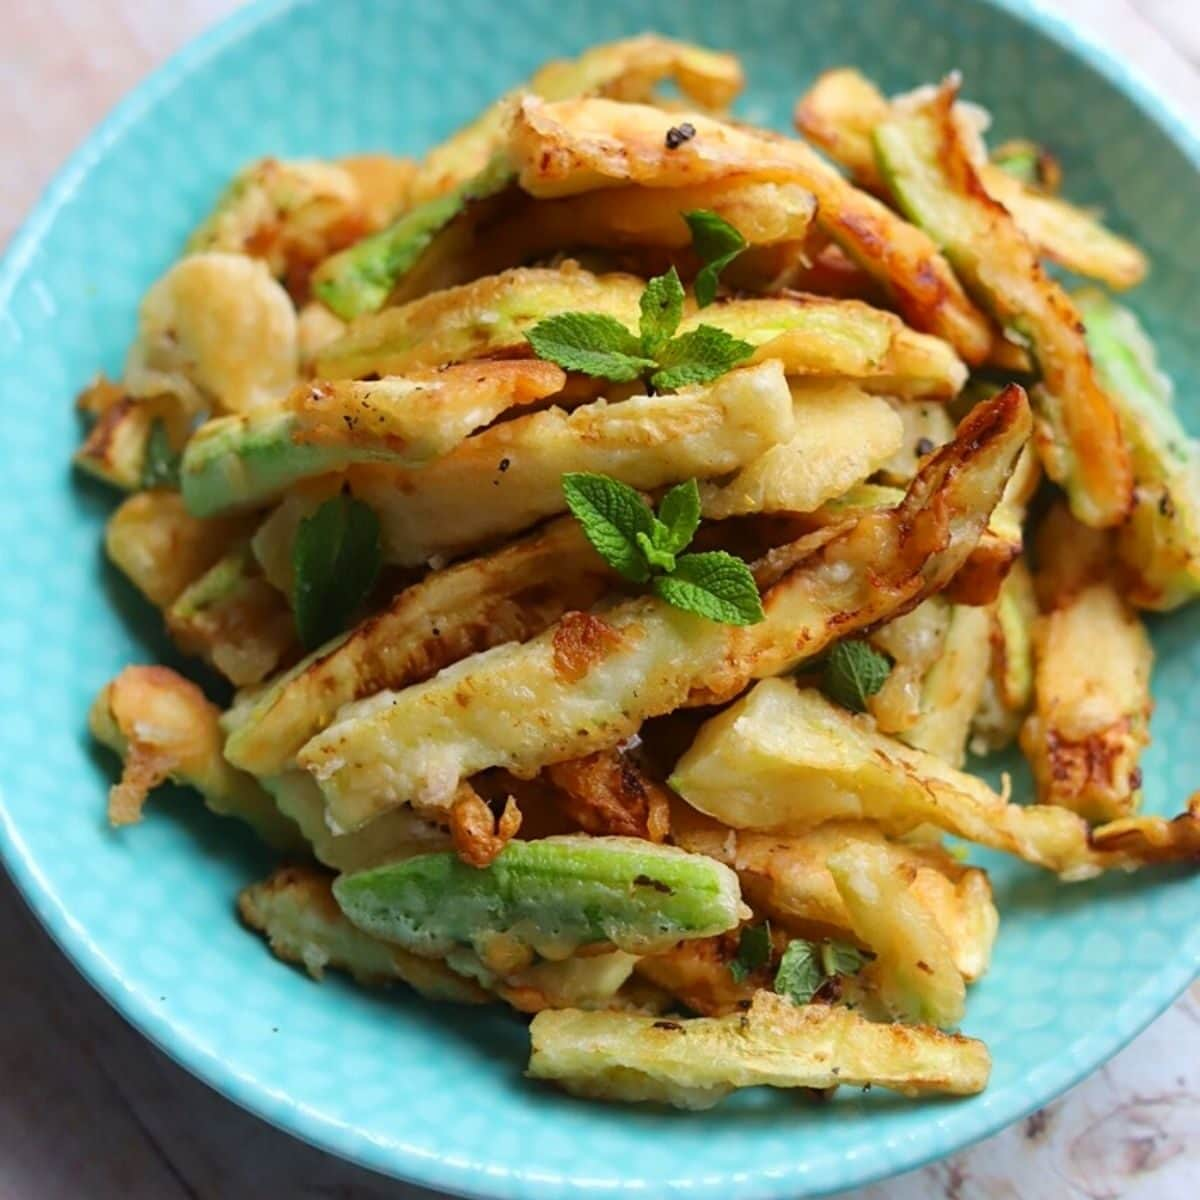 Plate of fried zucchini with mint leaves.